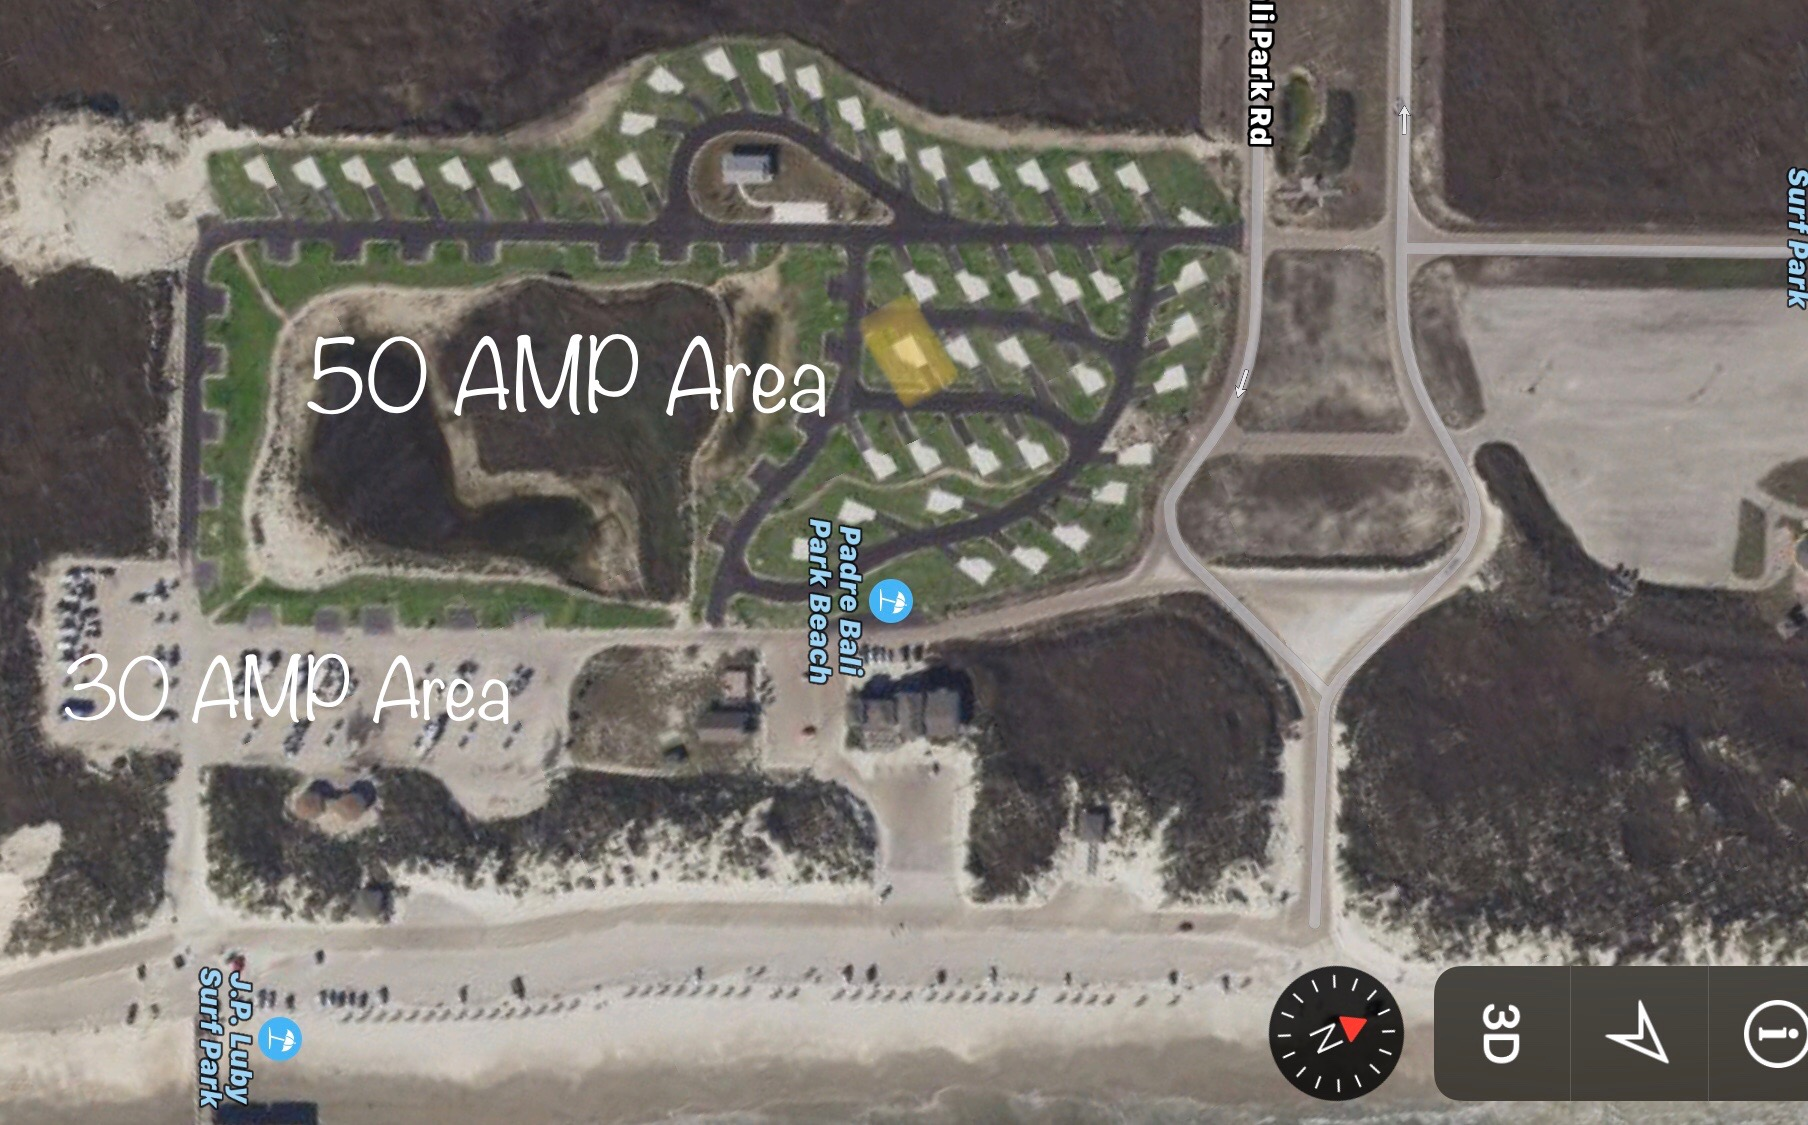 The highlighted site is site 16 which is the site we stayed in.